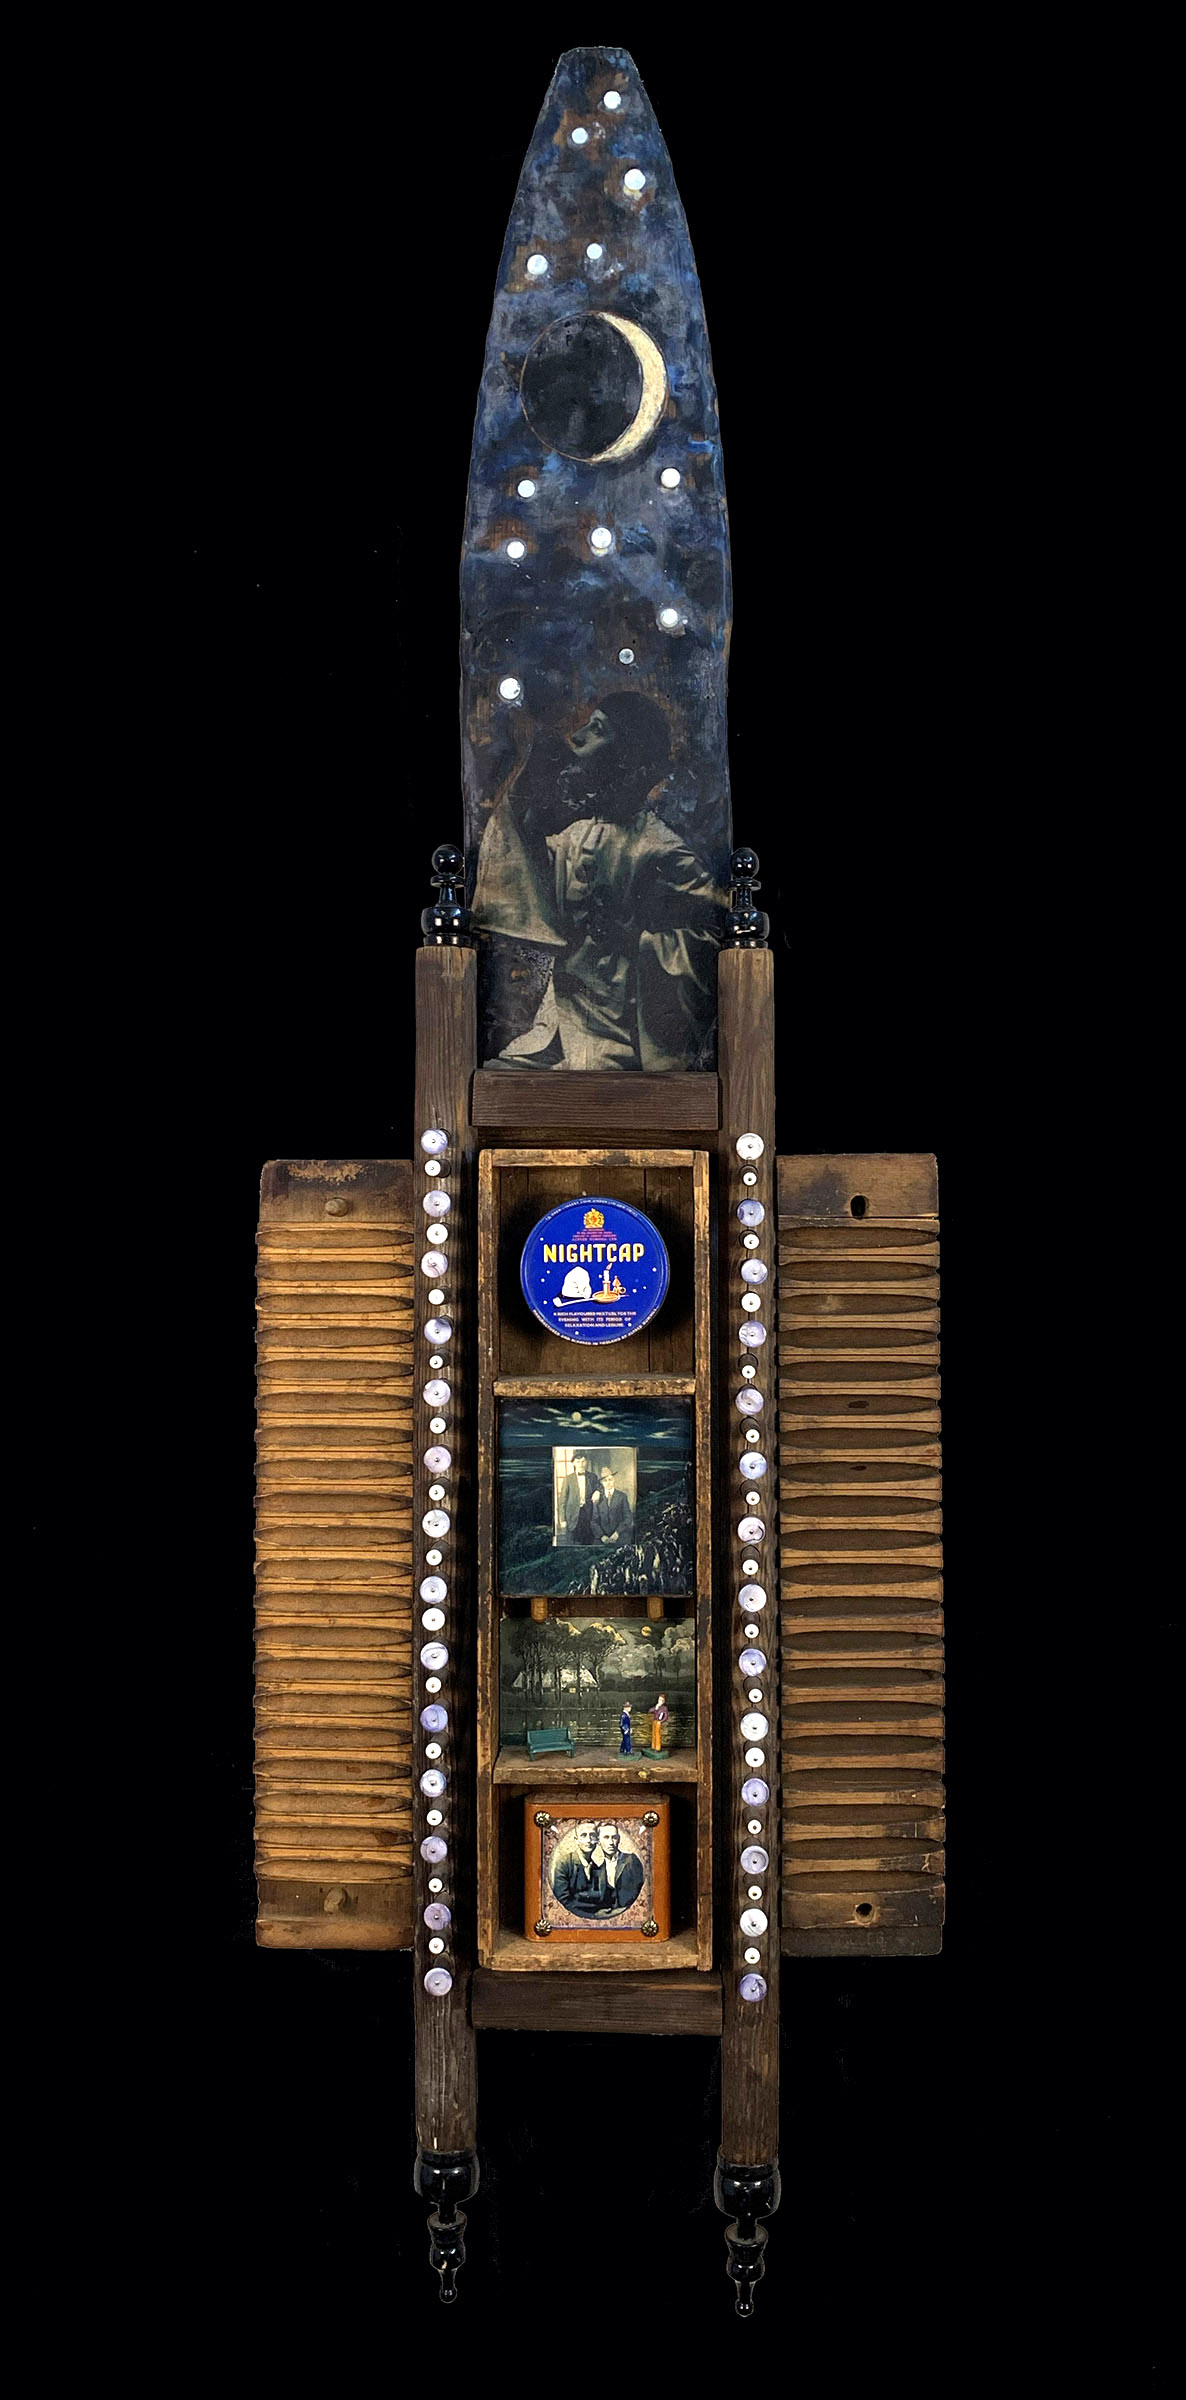 ""\""""In The Stillness"""" 2011  $950.00 62.5""""h x 19.5""""w x 4.5""""d mixed media assemblage: wood box, wood pelt stretcher, wood chess pieces, vintage tin lid, mother of pearl buttons, clock case, cardboard game box, vintage postcard, model train figures & bench, cigar mold, vintage photos, digital scans, paper, Victorian scrap, wax""1186|2400|?|en|2|77cc0158b5dce982c1cdfab734538117|False|UNLIKELY|0.3027817904949188